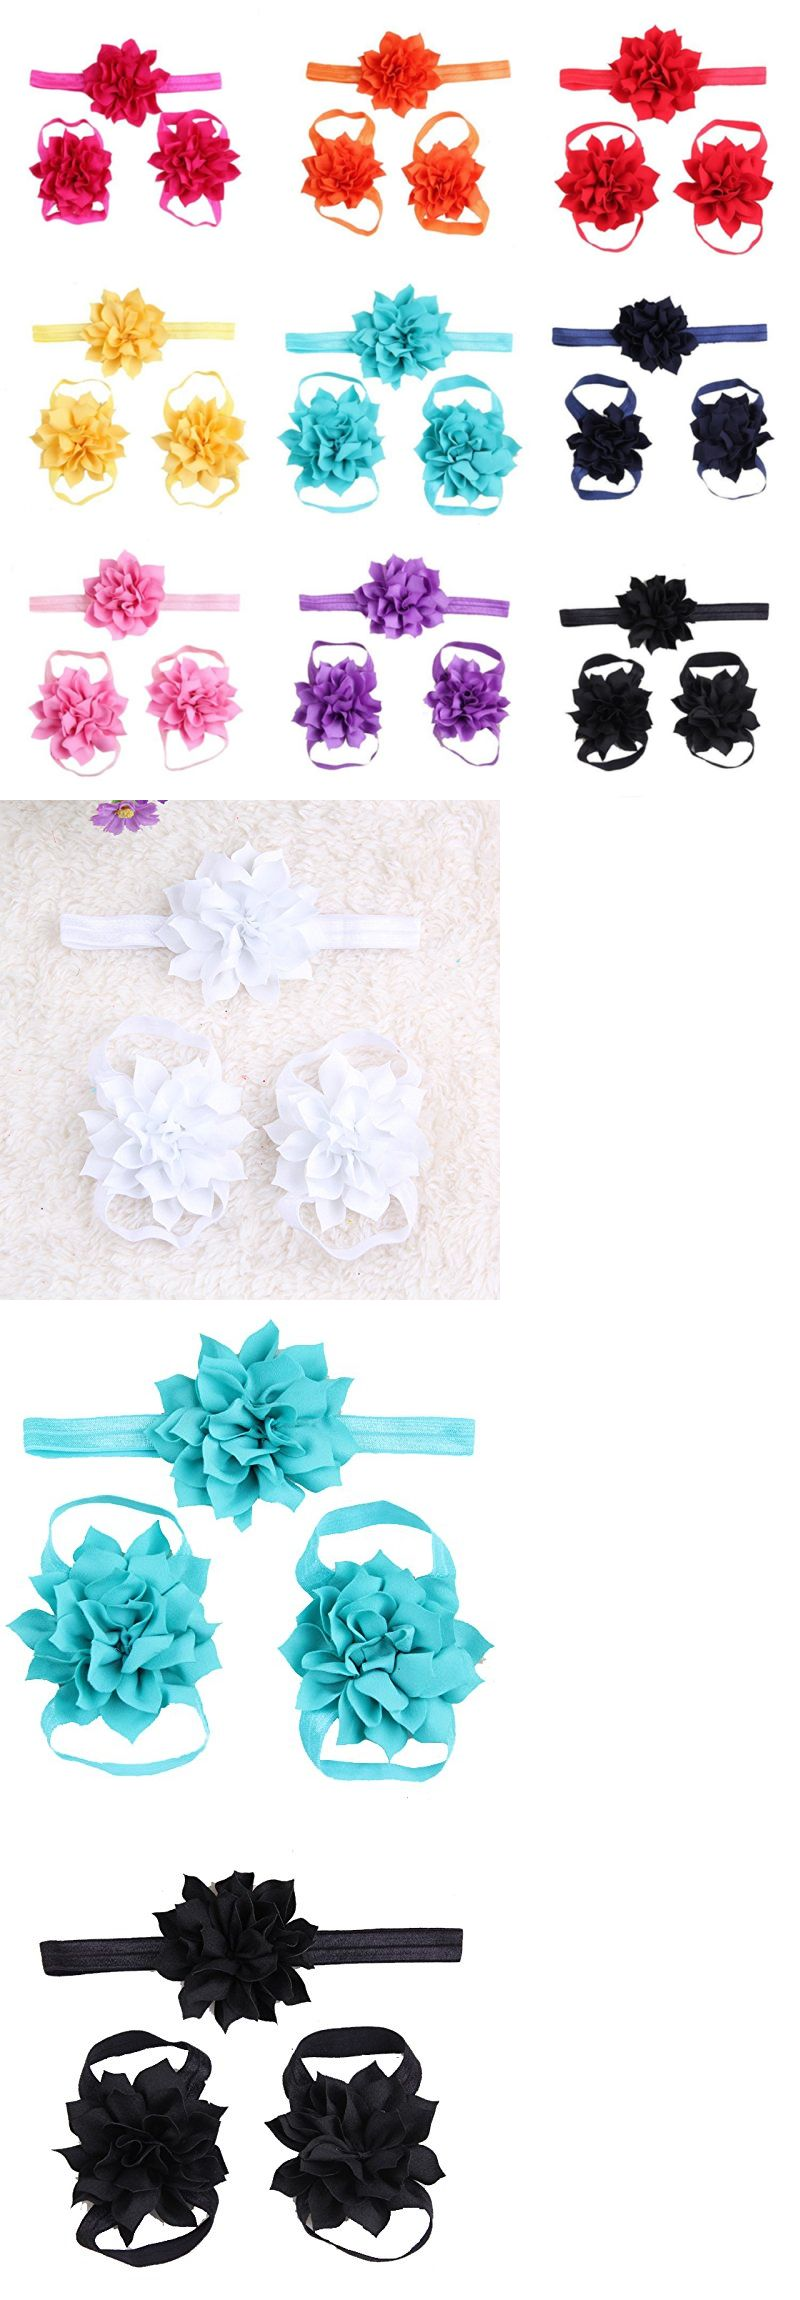 Hair accessories for babies ebay - Hair Accessories 18786 Lovinglove 10 Colors Baby Girls Foot Flower Barefoot Sandals Headbands Set